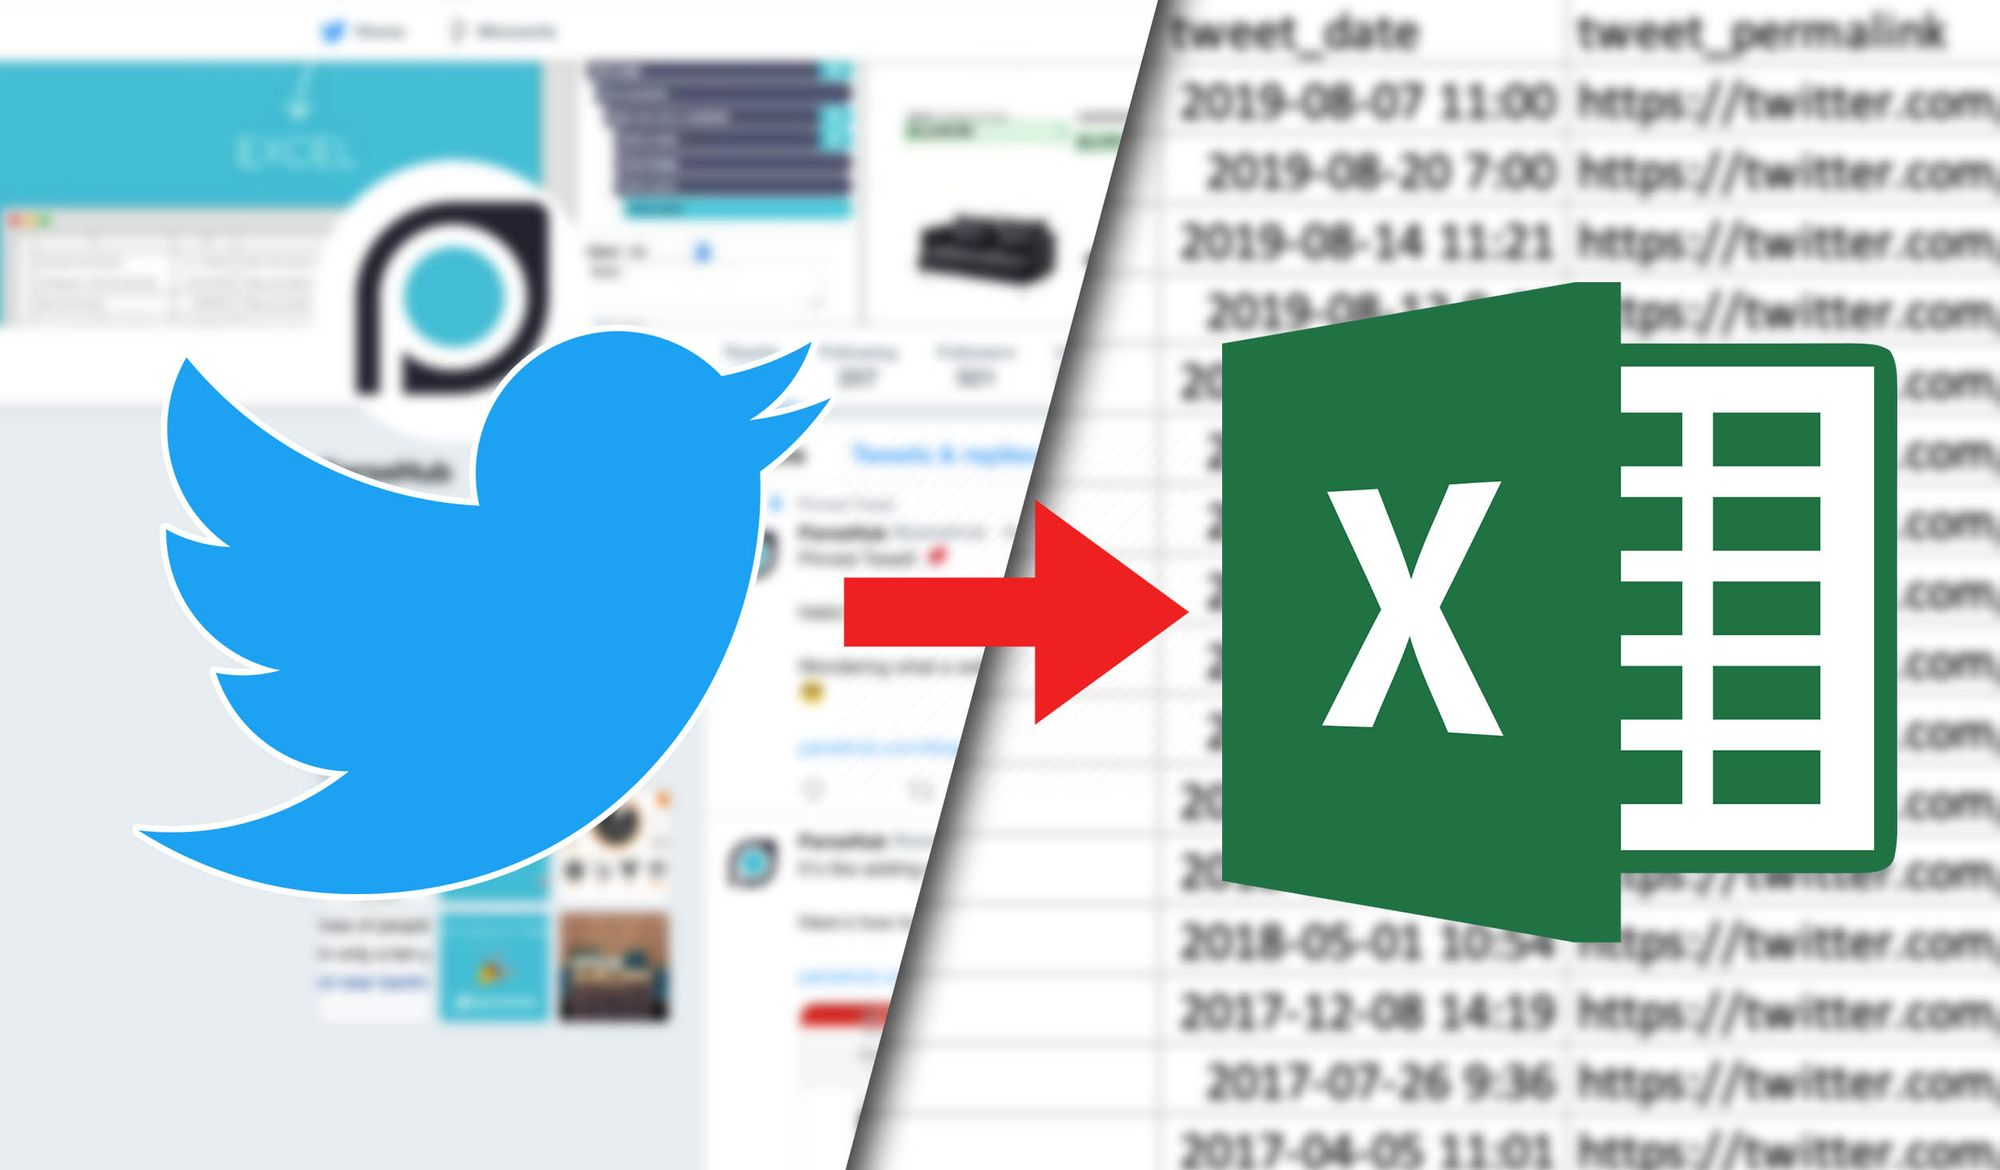 How to Scrape Twitter timelines: Tweets, Permalinks, Dates and more.